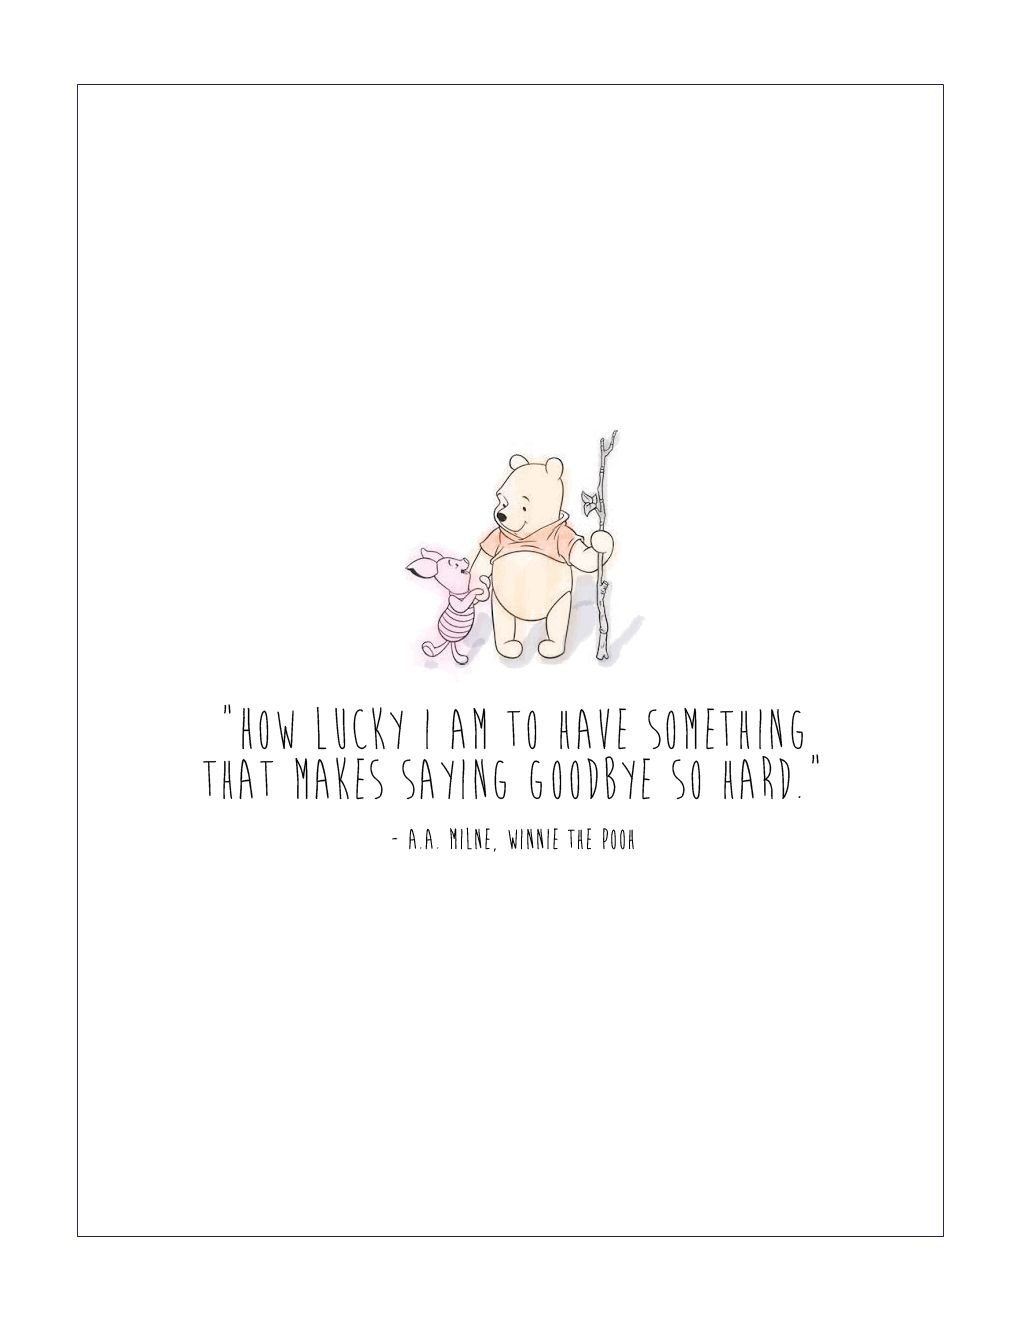 Winnie The Pooh Quotes About Life Free Winnie The Pooh Printable  Life Lessons Qoutes And Wisdom